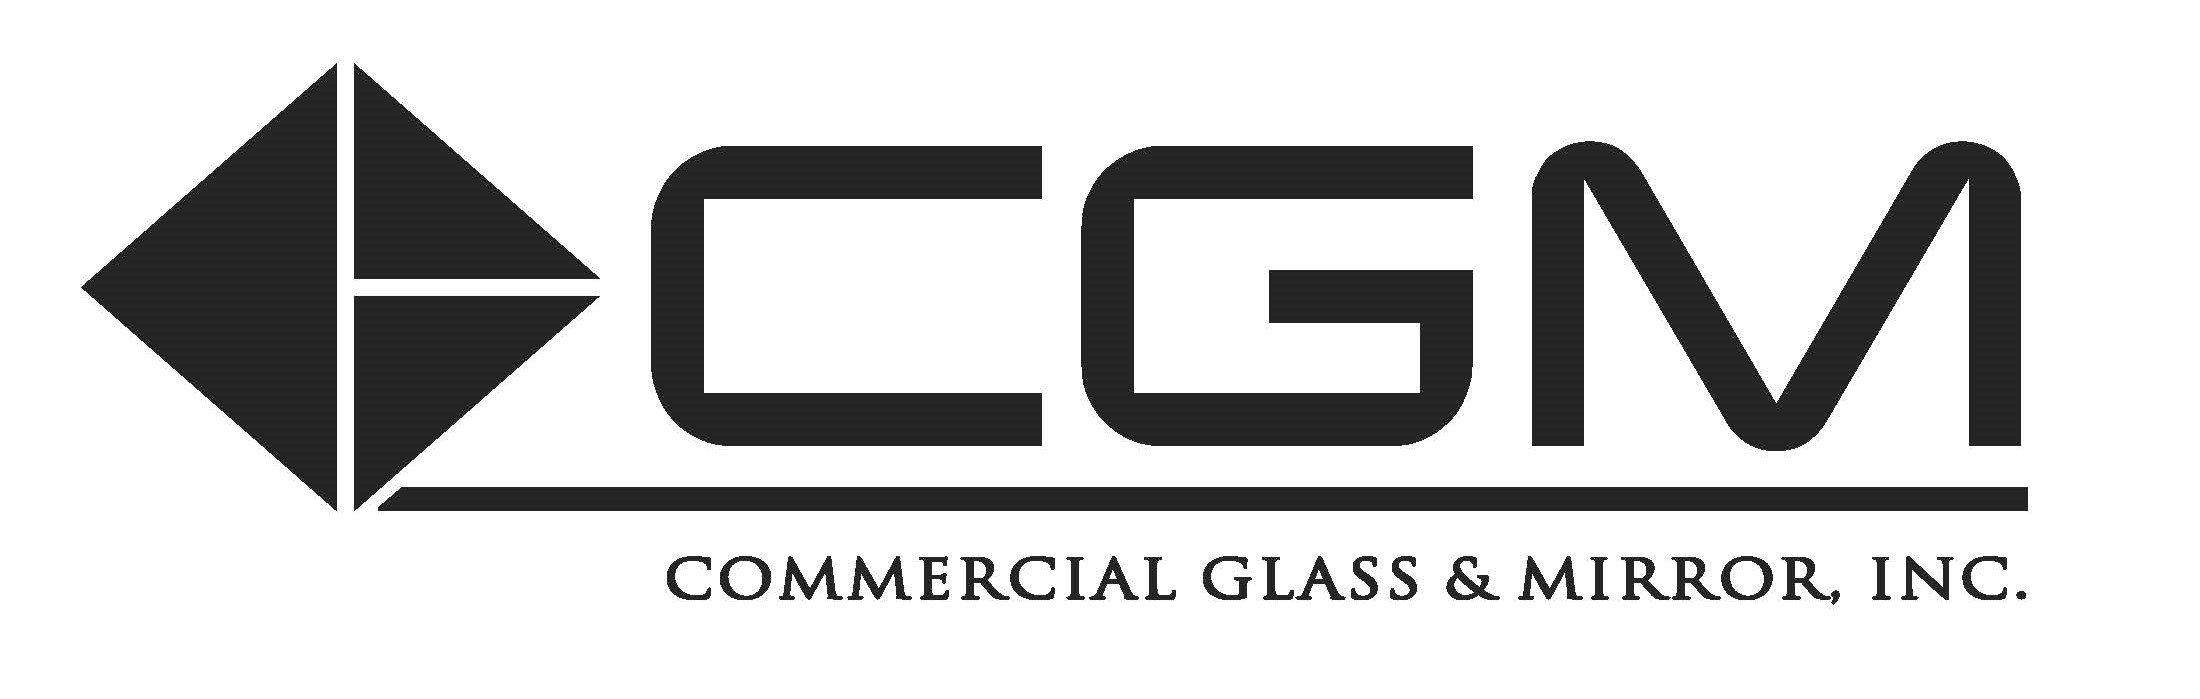 Commercial Glass and Mirror